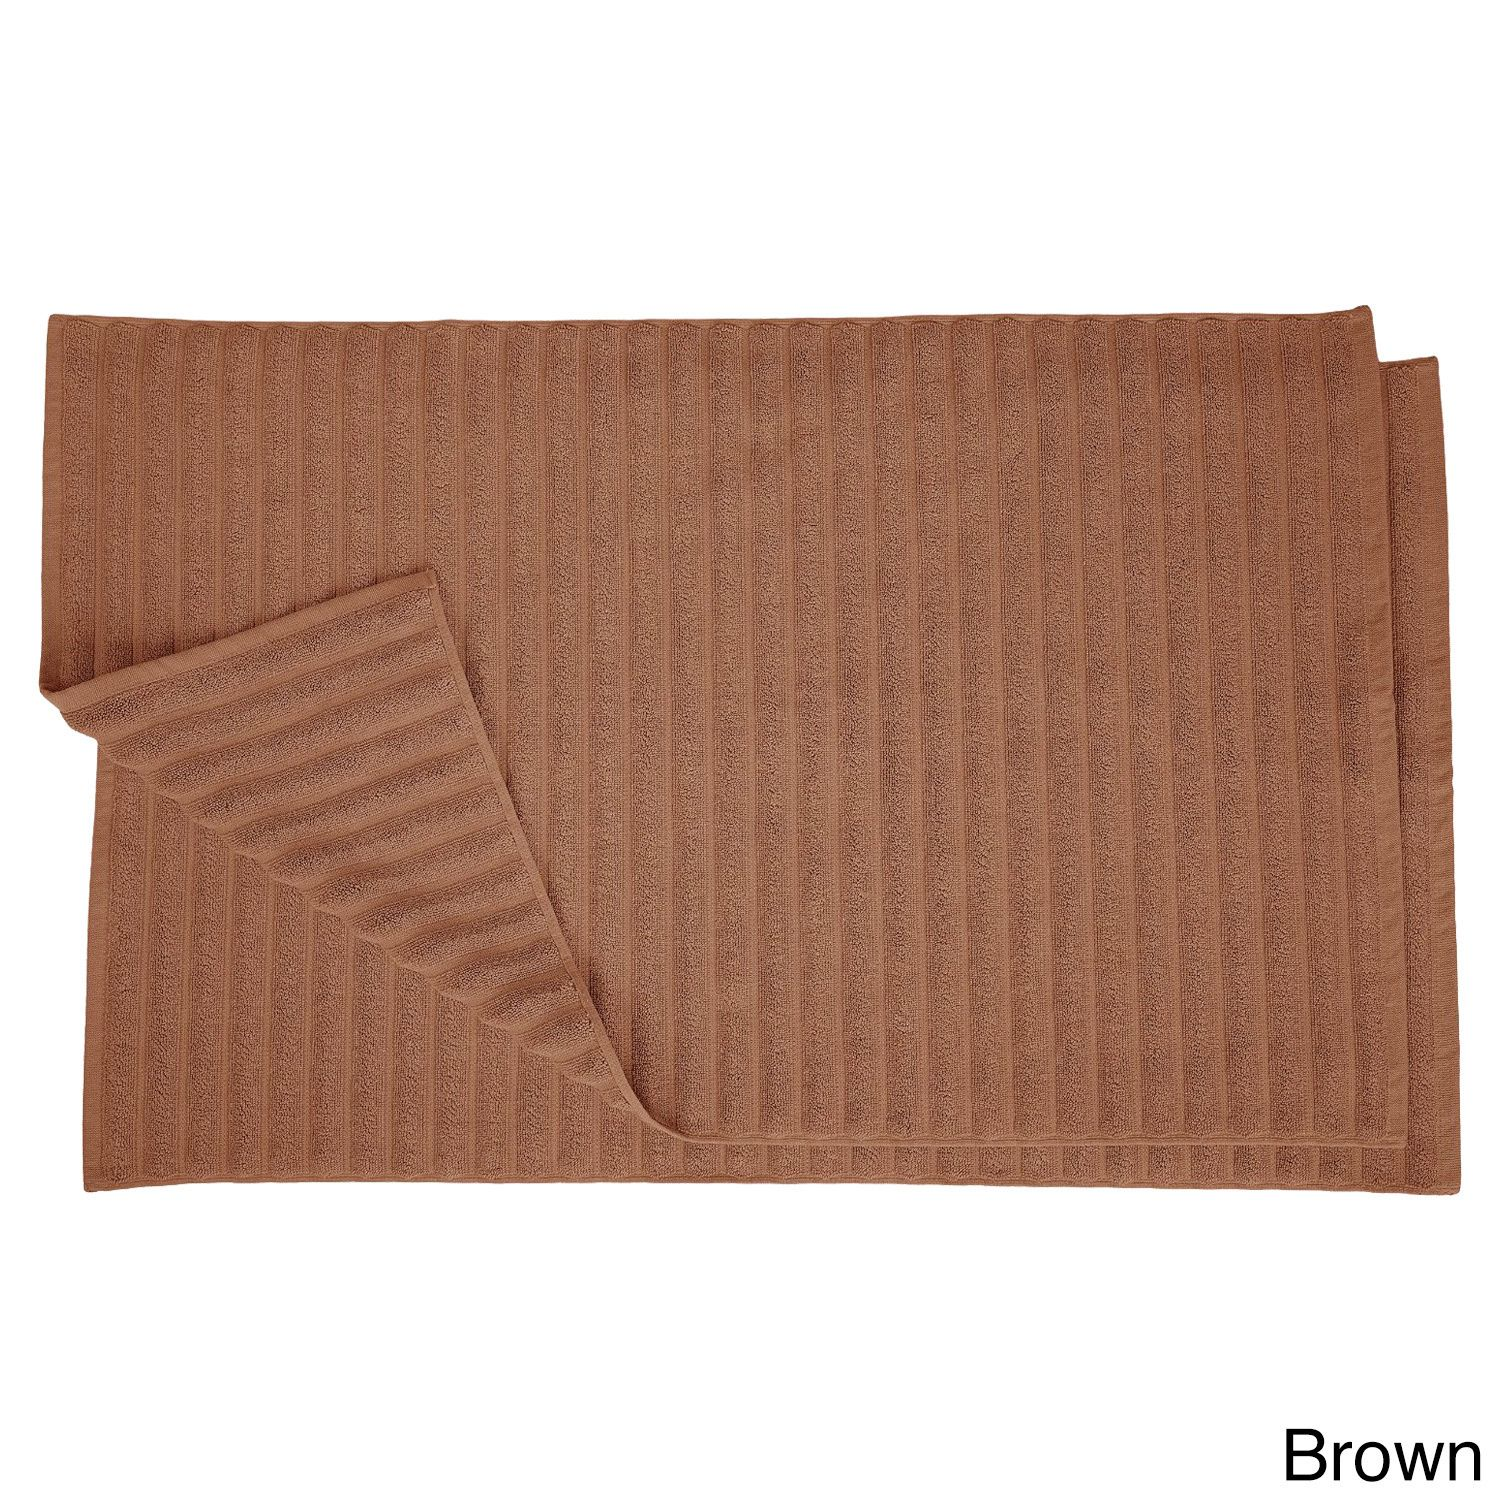 Superior Eco Friendly Cotton Soft And Absorbent Bath Mat (Set Of